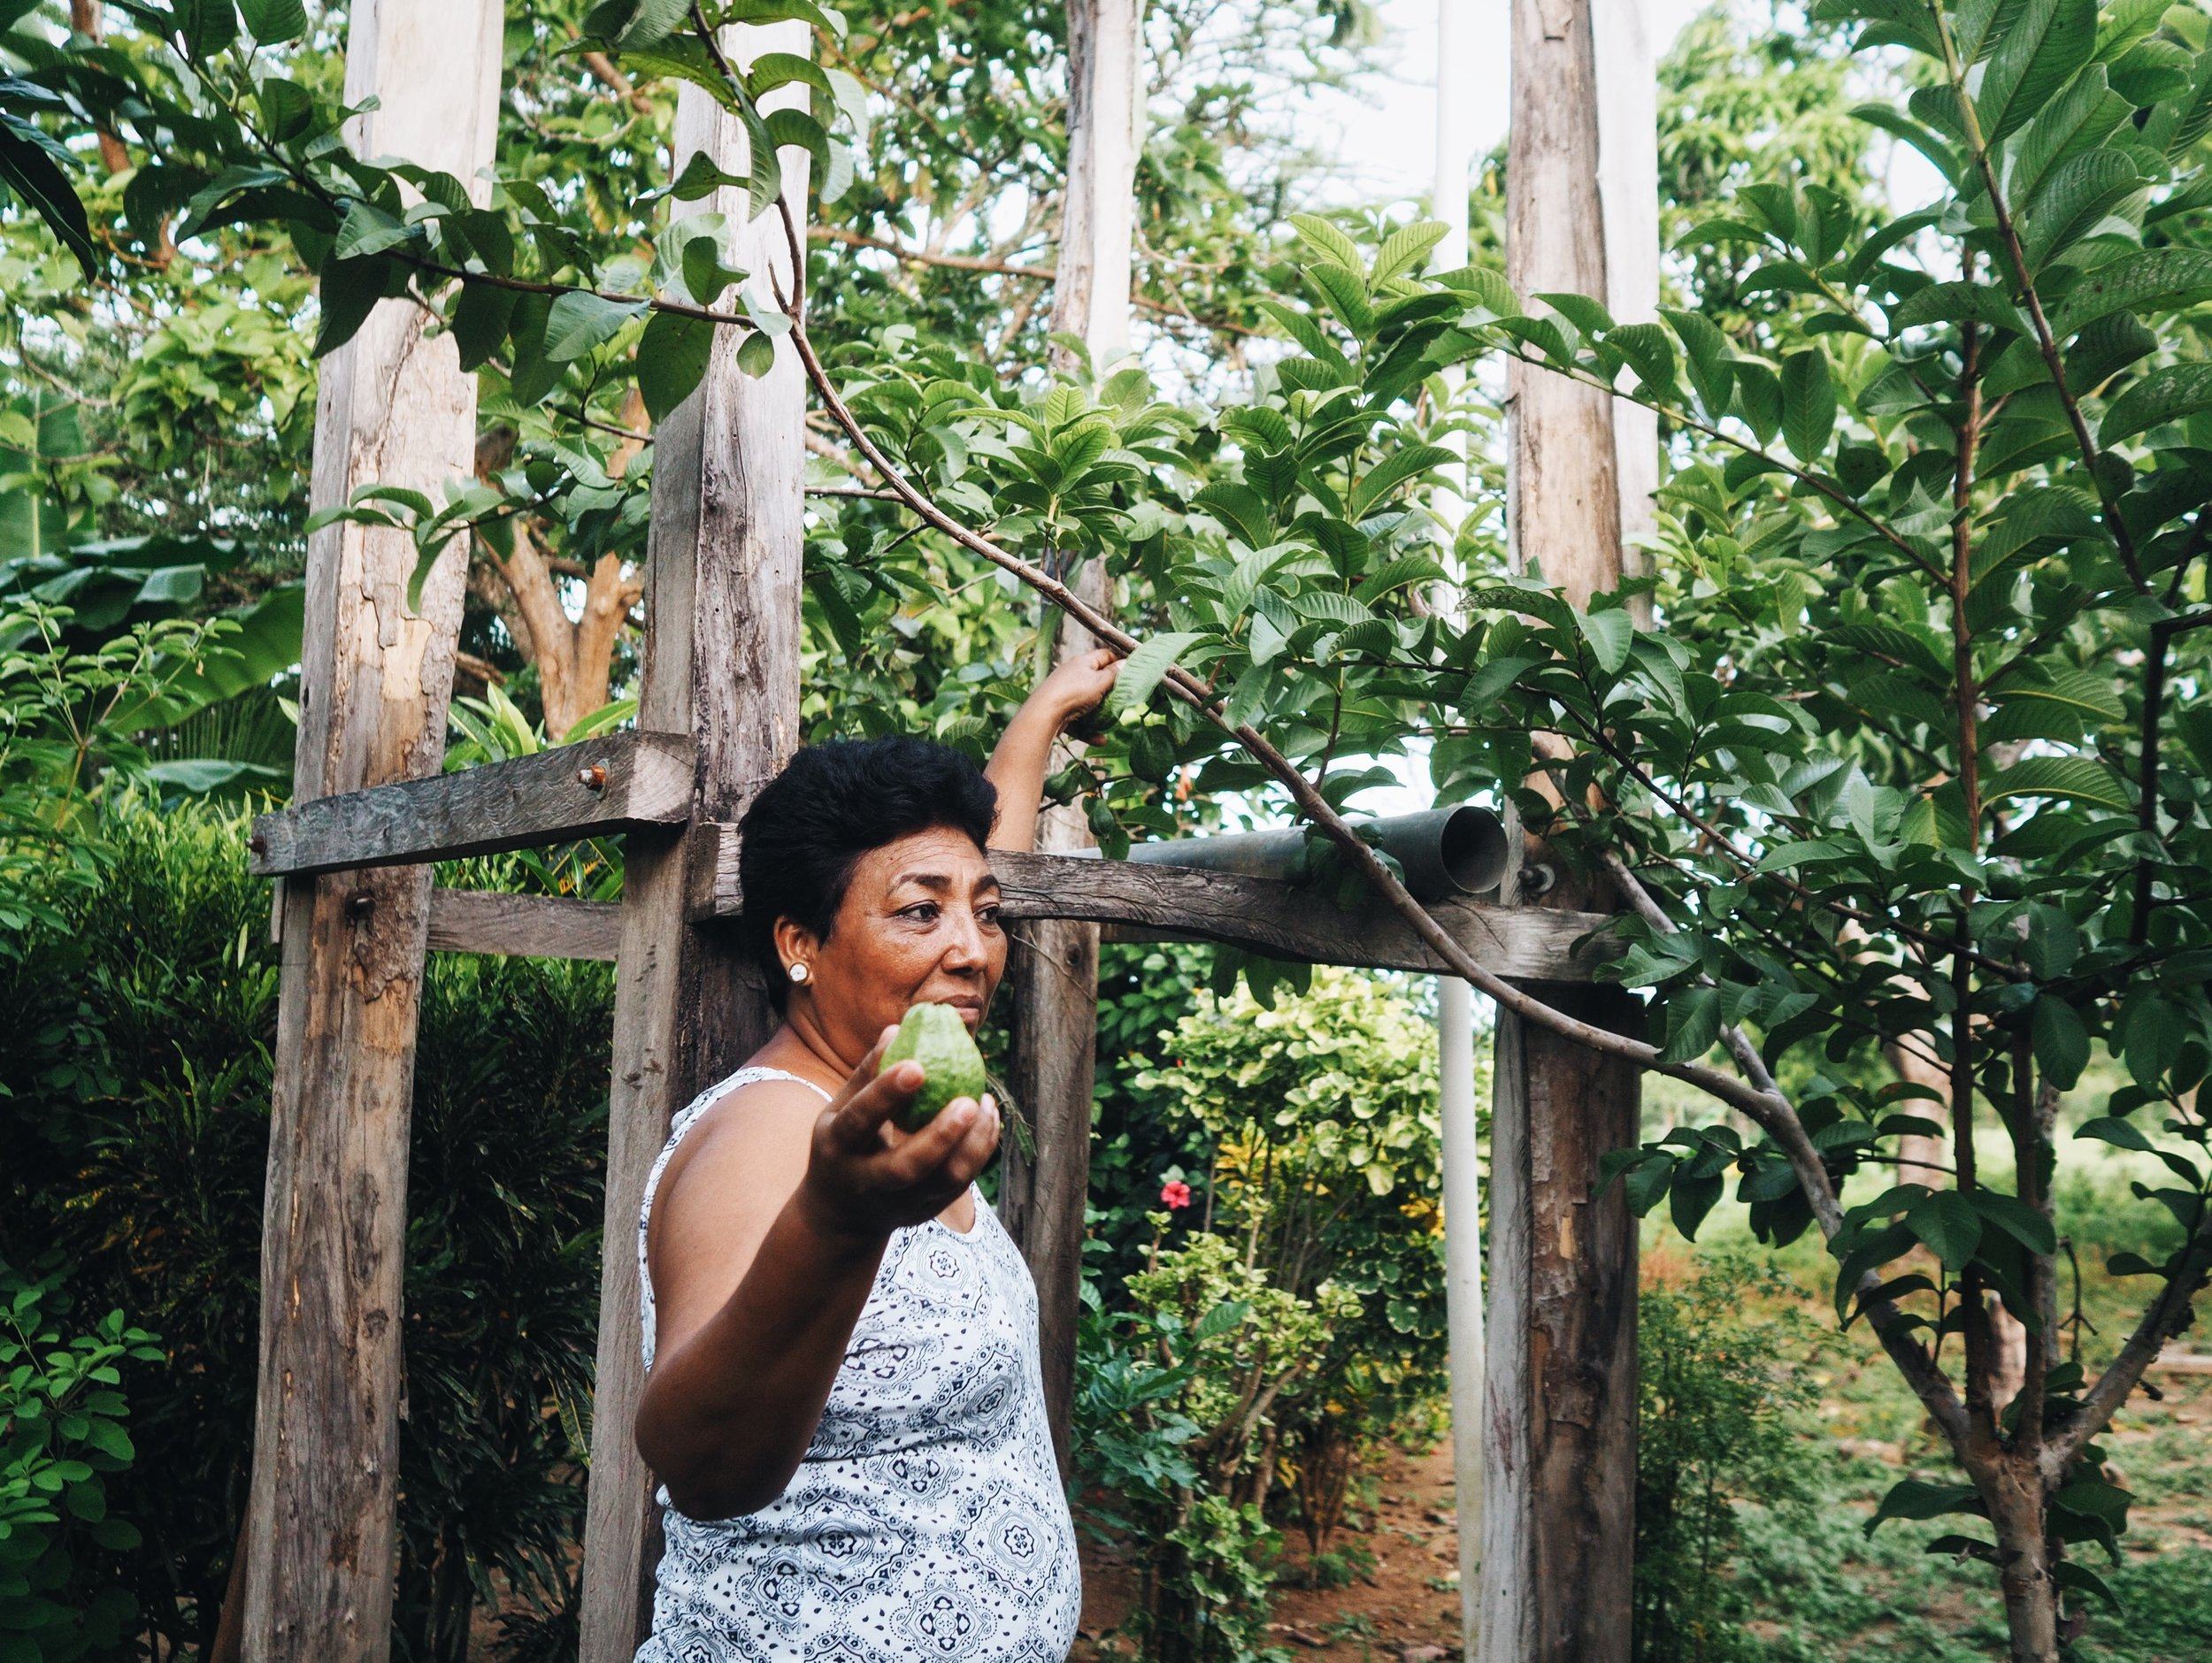 Diana offers us some guayaba